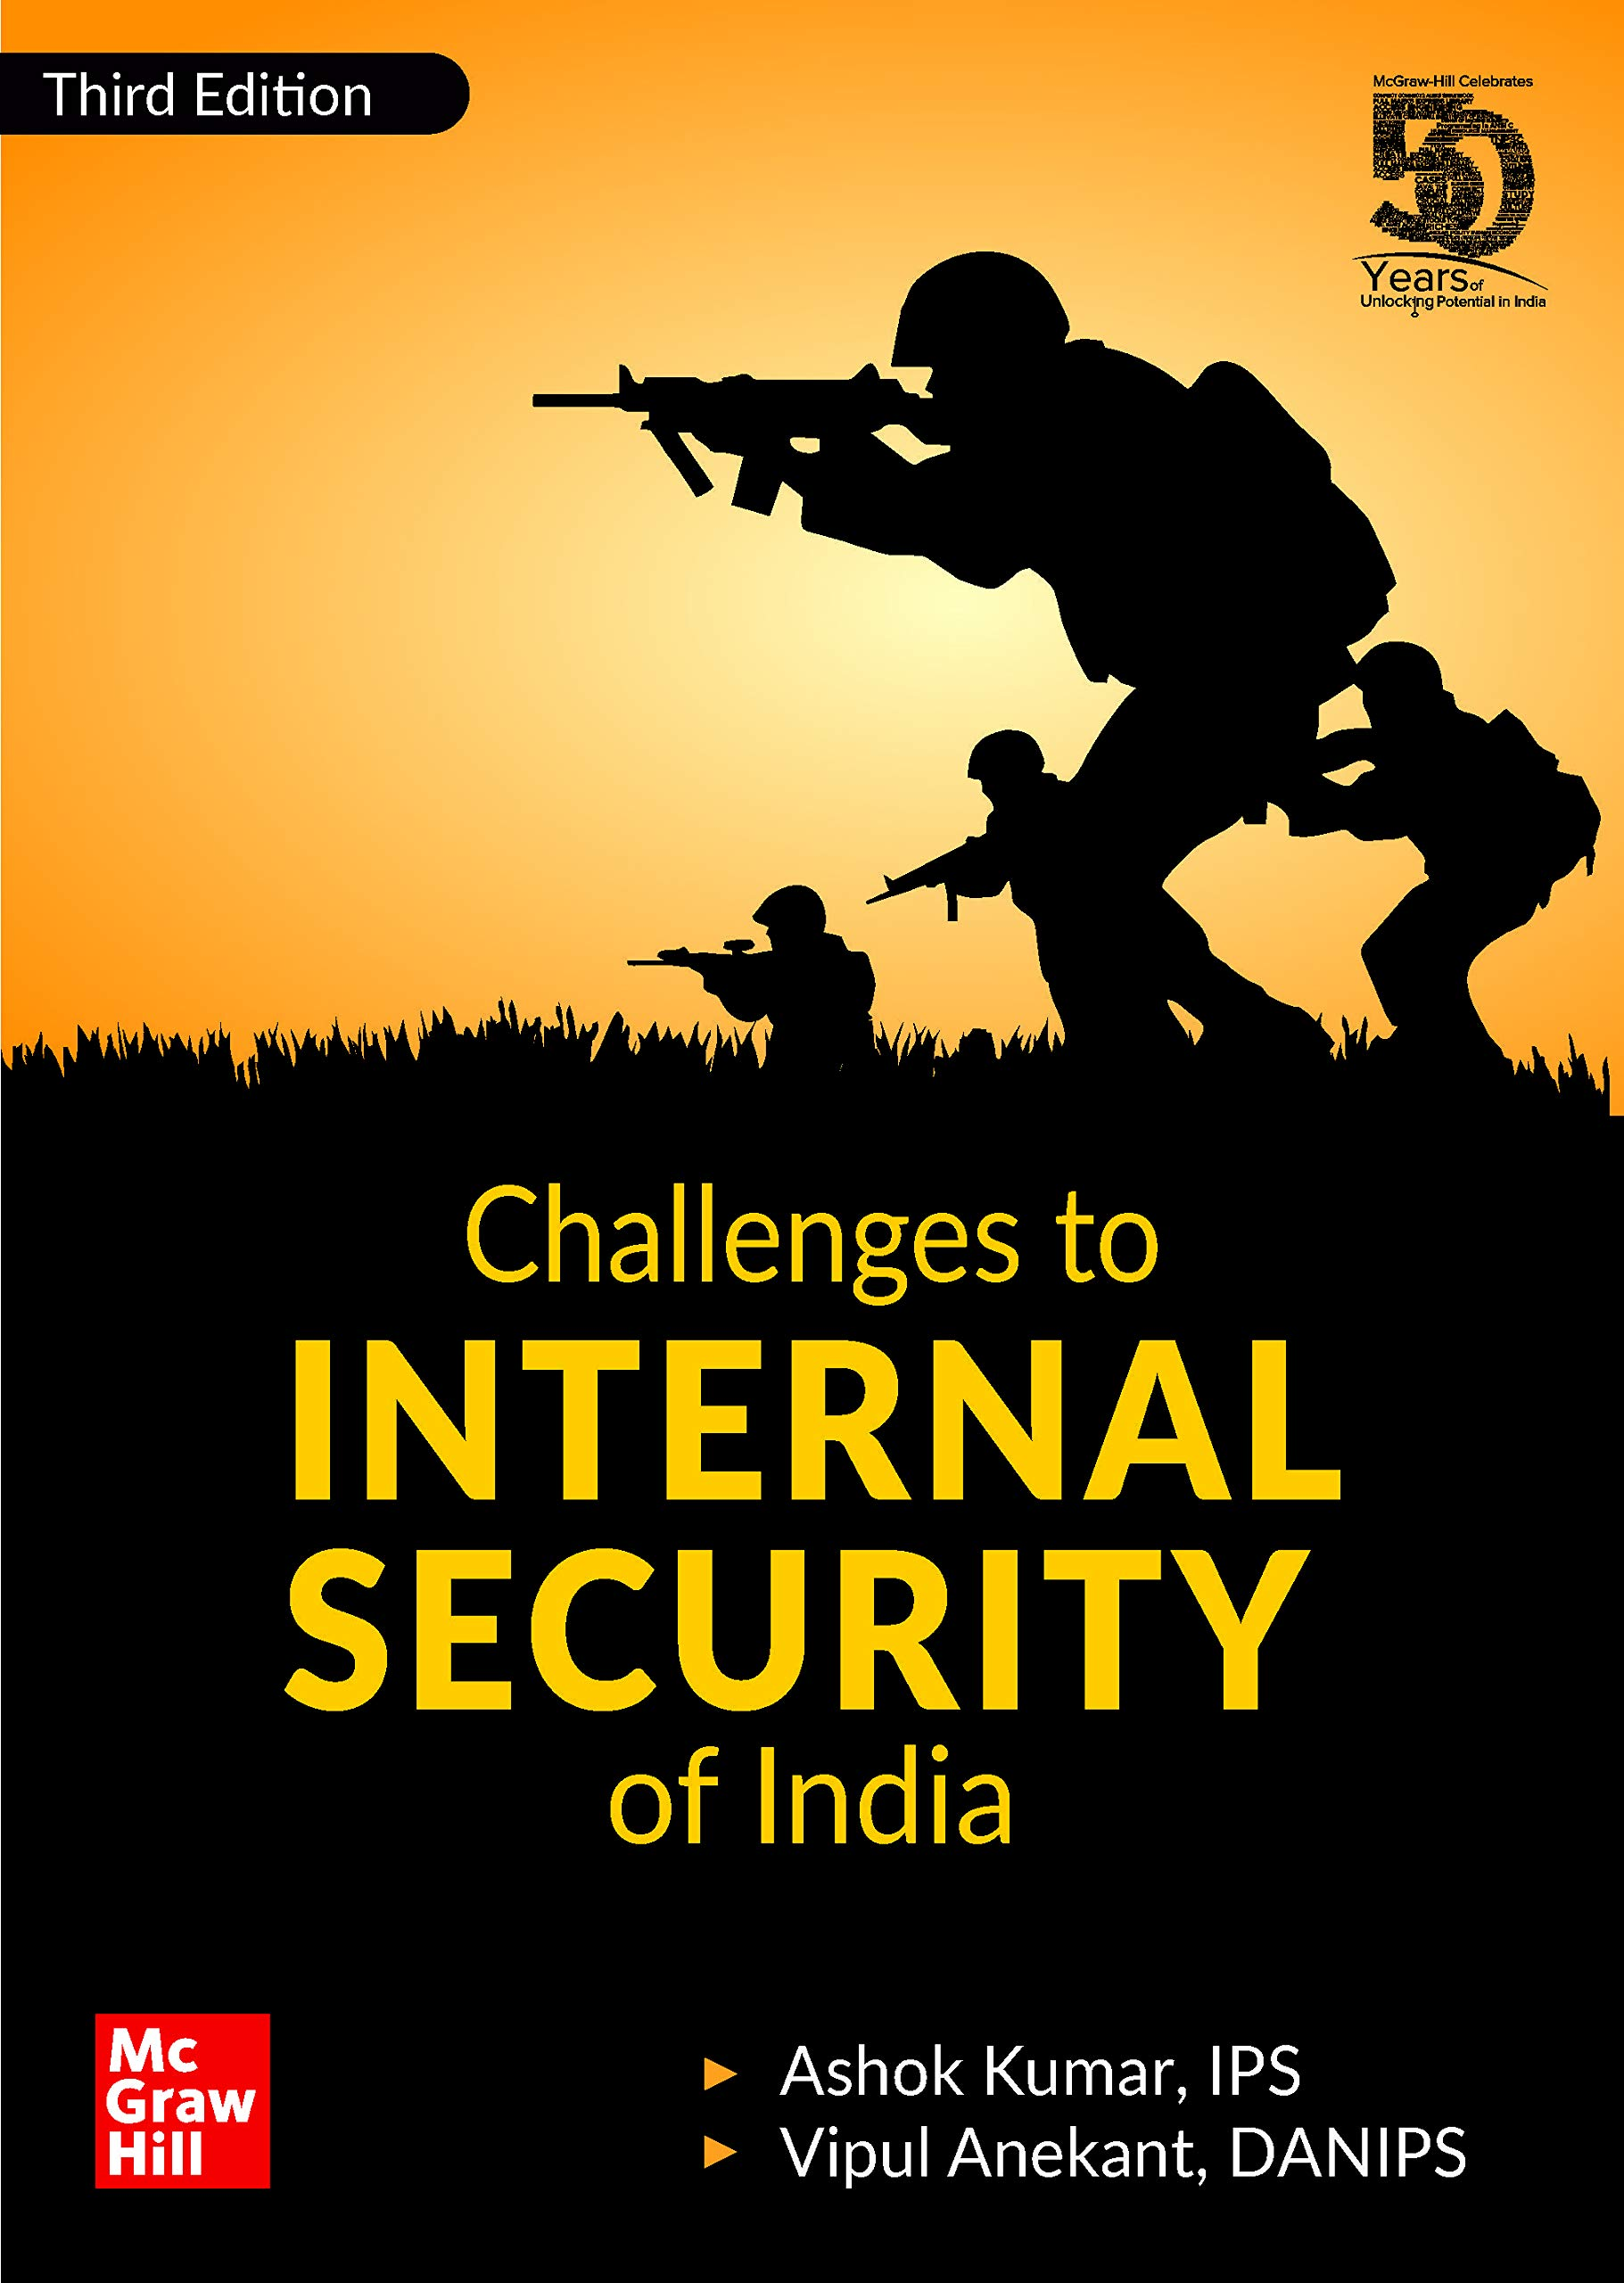 Challenges to Internal Security of India (Third Edition) Paperback – 6 June 2019